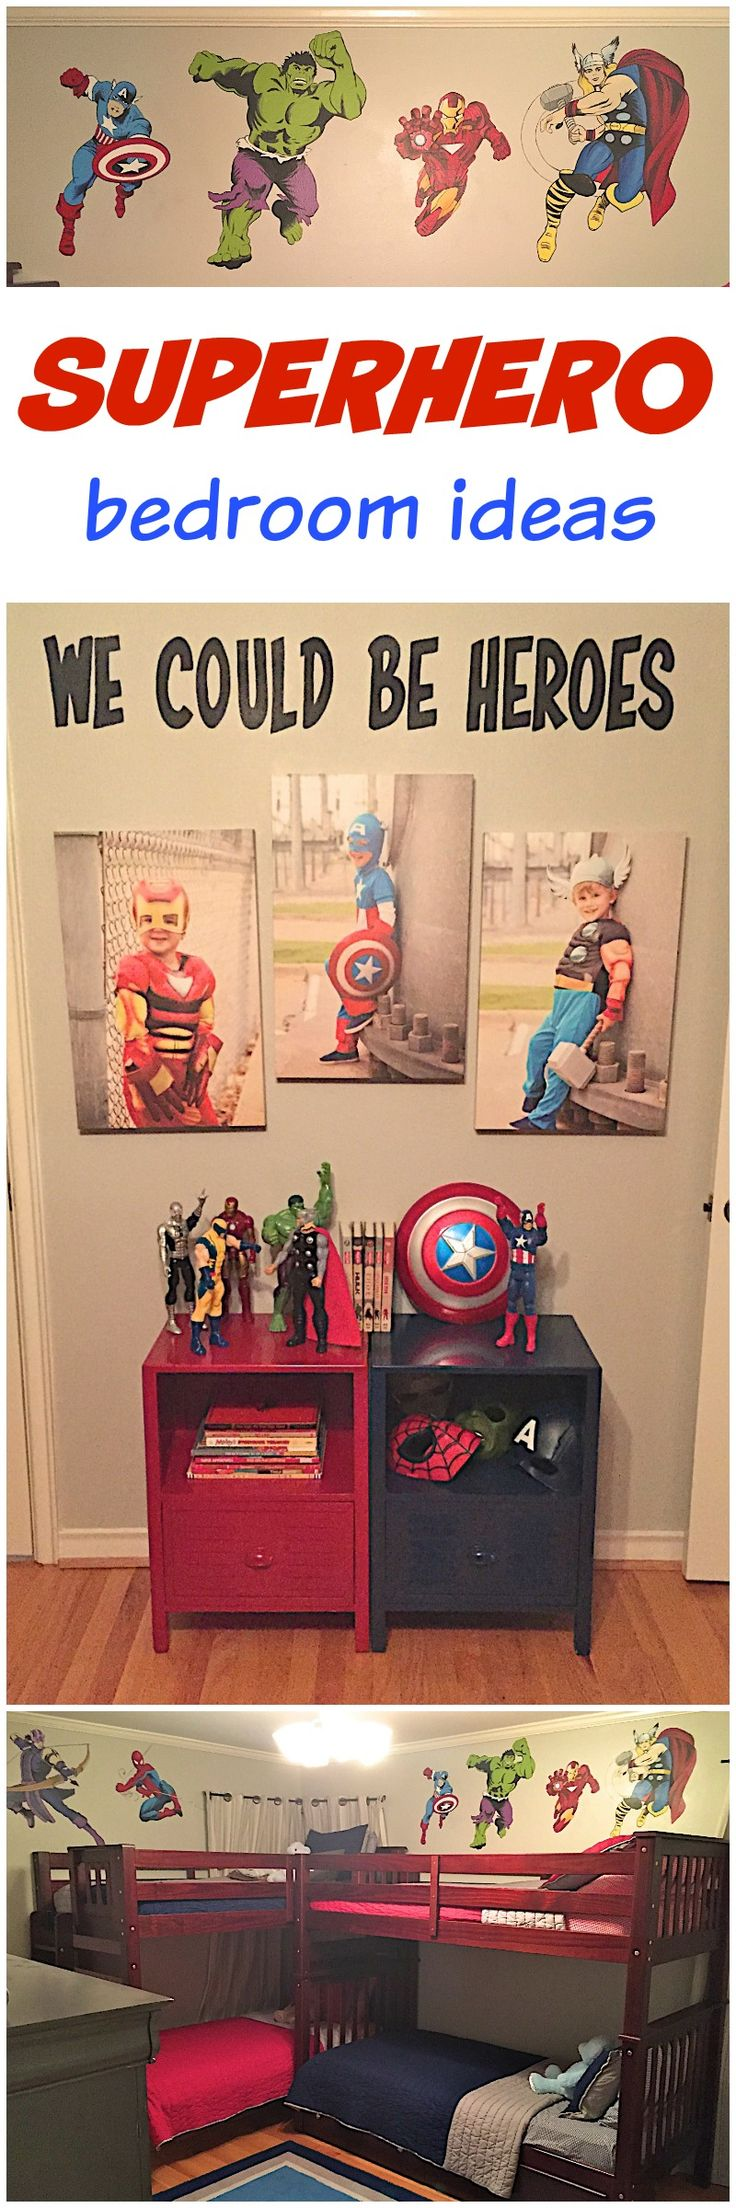 Superhero bedroom - Superhero Bedroom Ideas